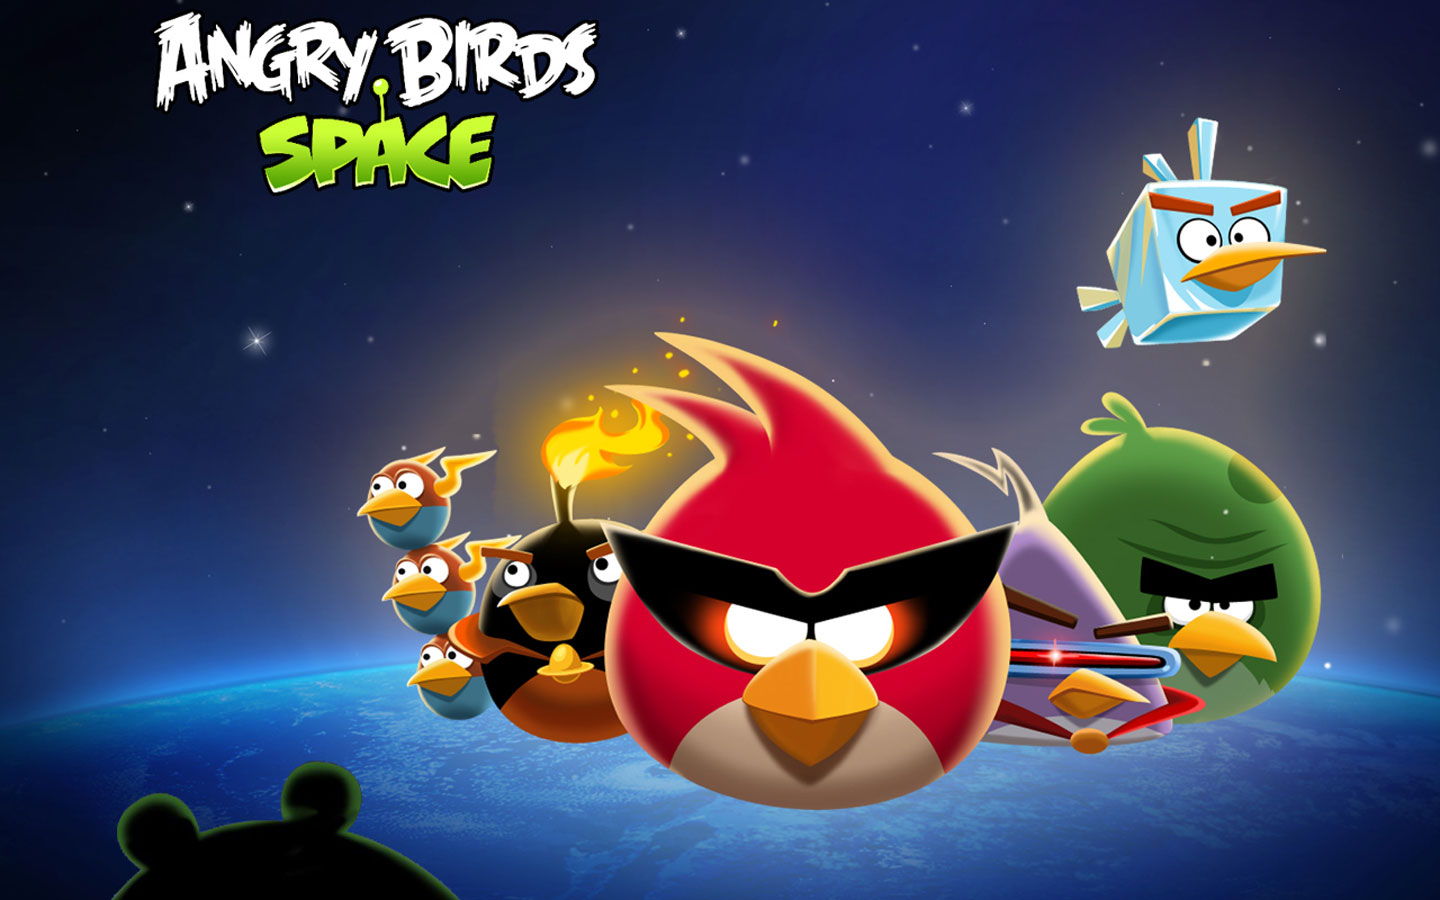 angry birds space images angry birds space wallpaper hd wallpaper